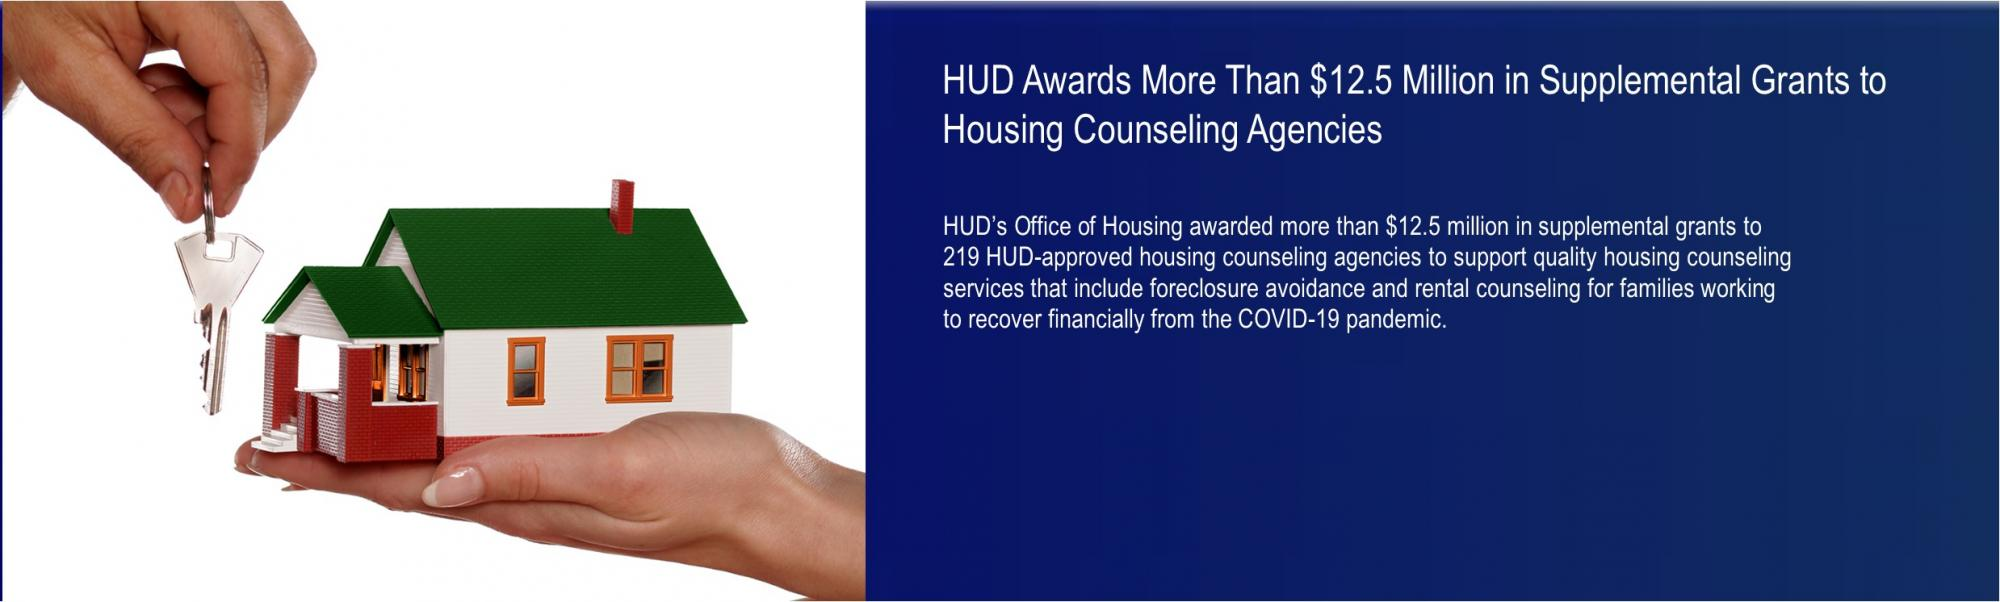 [HUD Awards More Than $12.5 Million in Supplemental Grants to Housing Counseling Agencies].